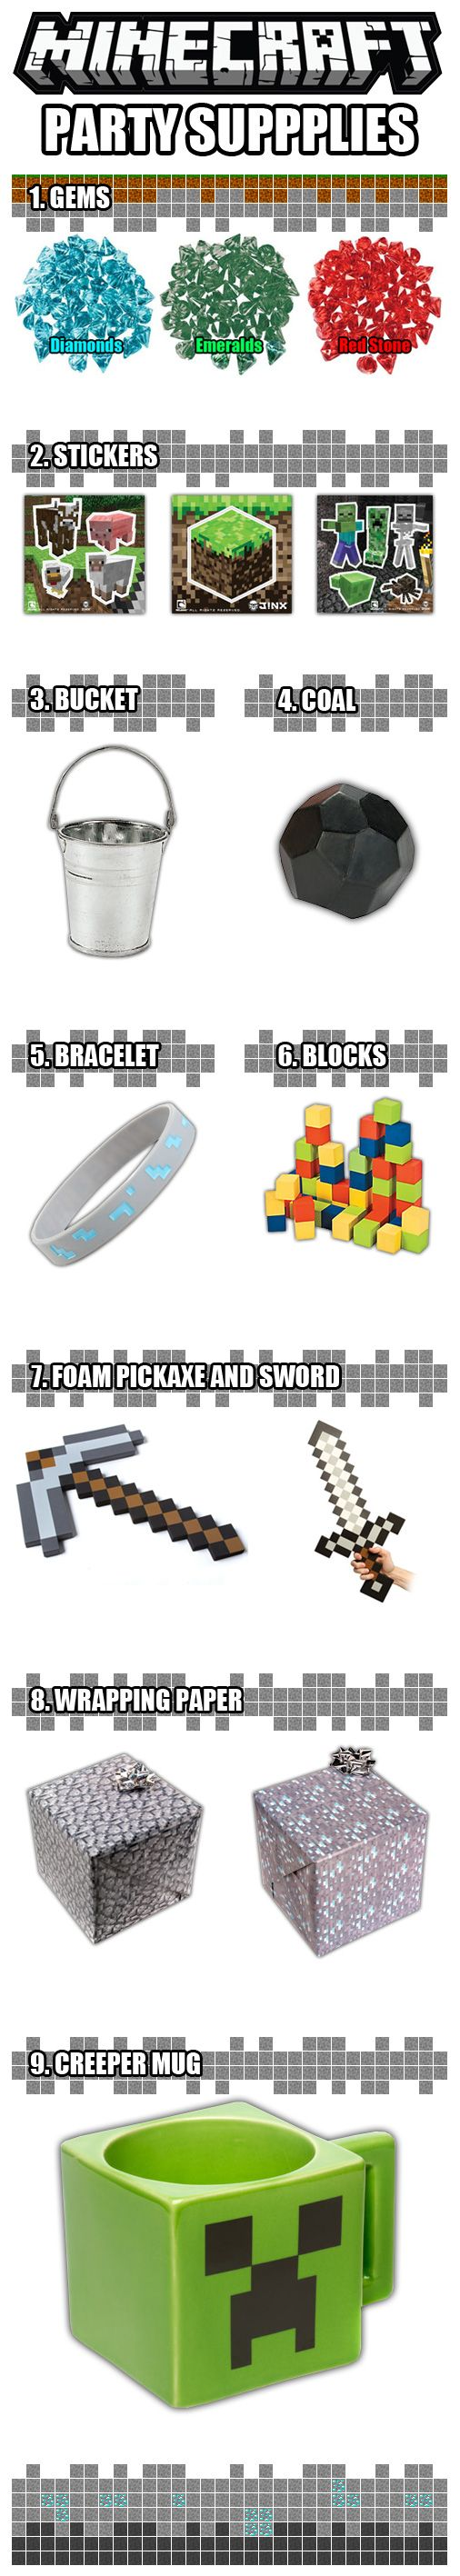 9 Minecraft Party Supplies to Help Build the Perfect Minecraft Birthday! www.DiscountPartySupplies.com